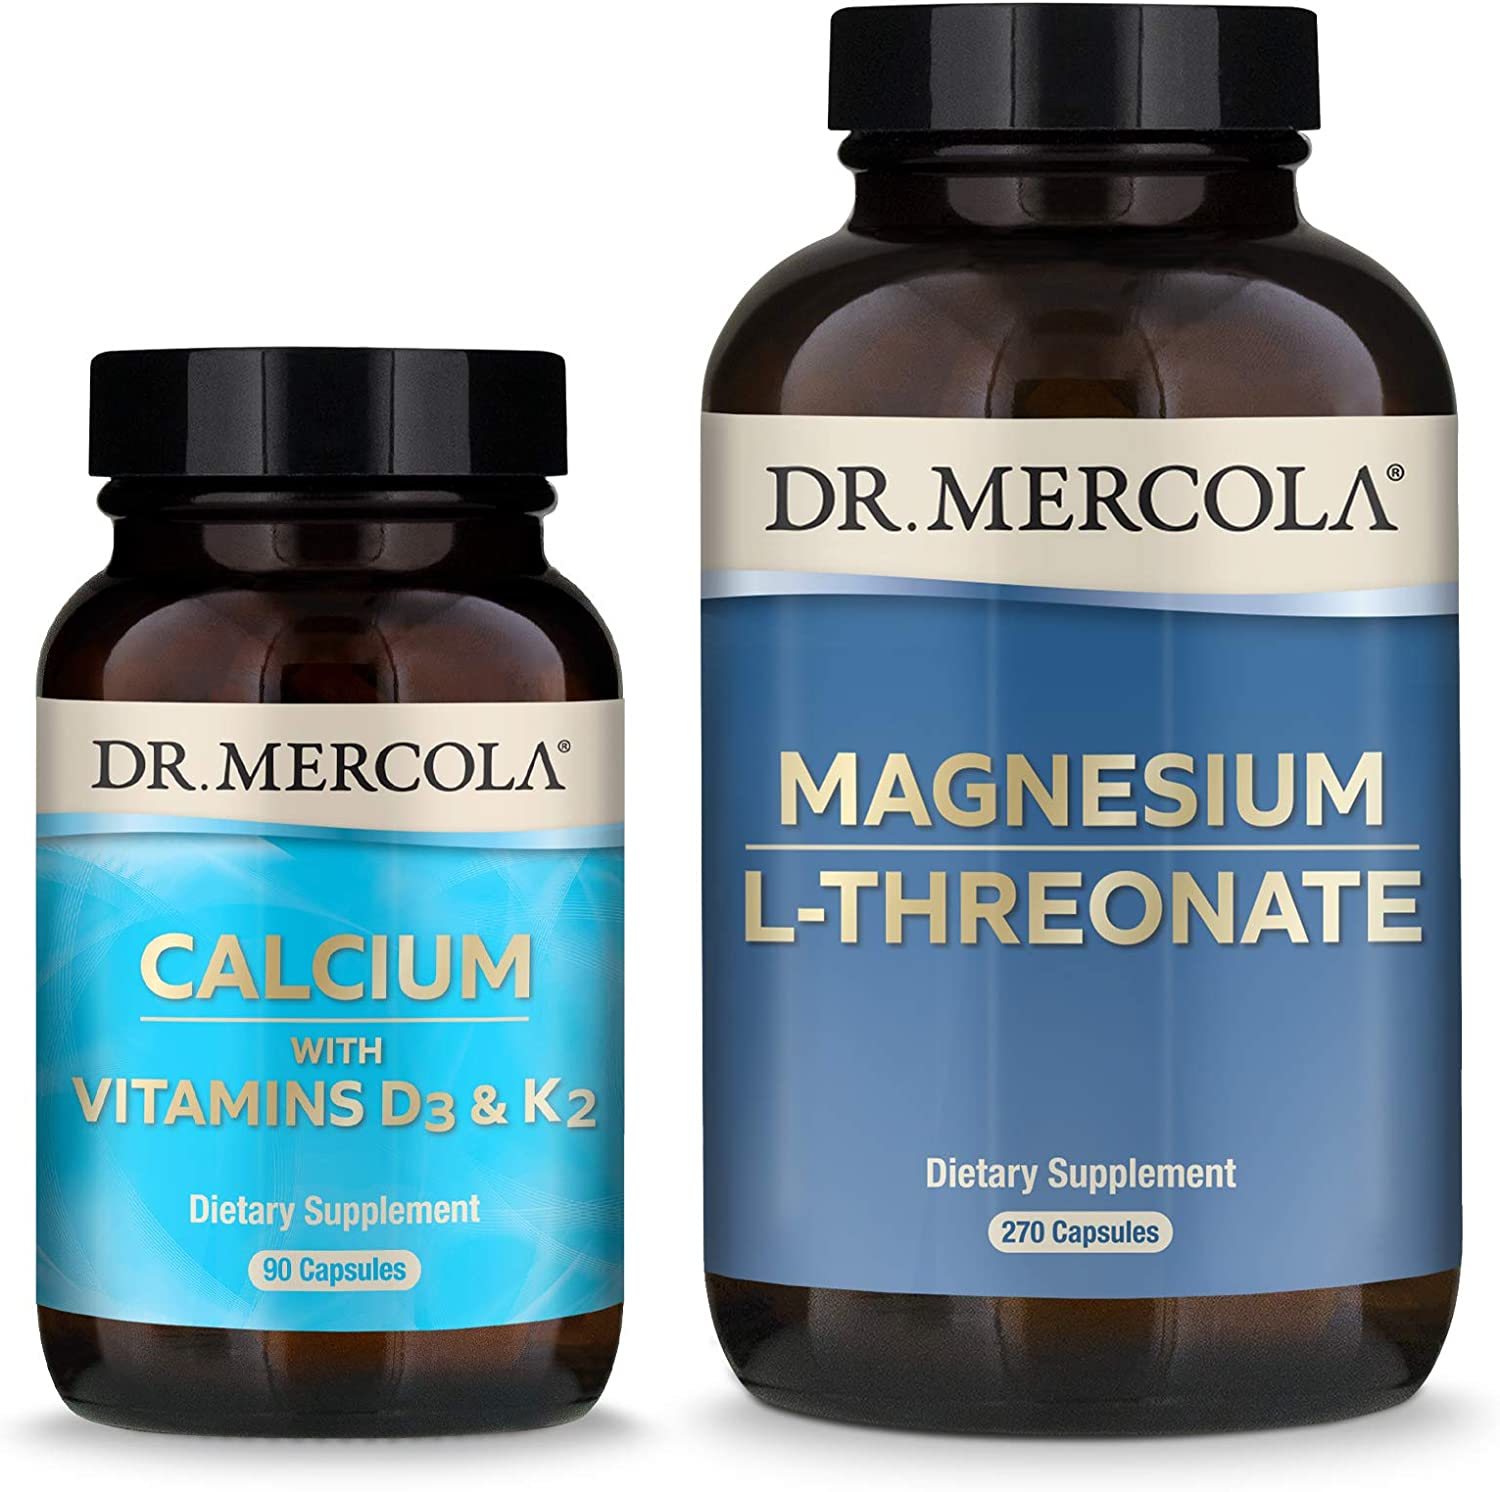 Dr. Mercola Calcium D3 & K2 and Magnesium L-Threonate Pack (90 Servings), Supports Bone and Cardiovascular Health, Non GMO, Soy Free, Gluten Free